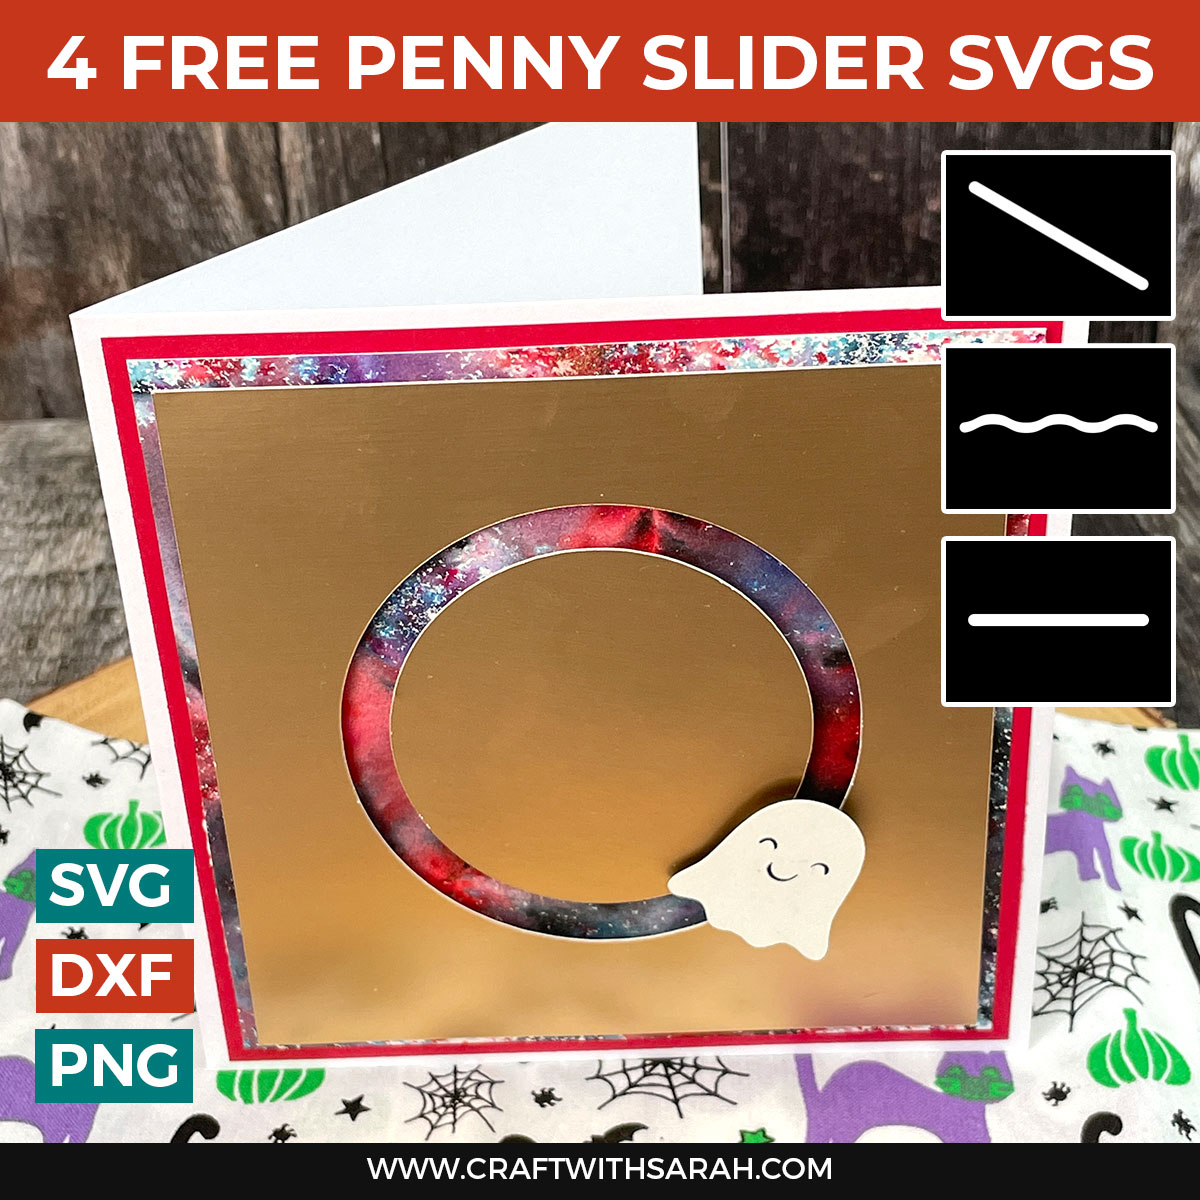 How to Make a Penny Slider Card: 4 Free Templates [HCC Day 2]